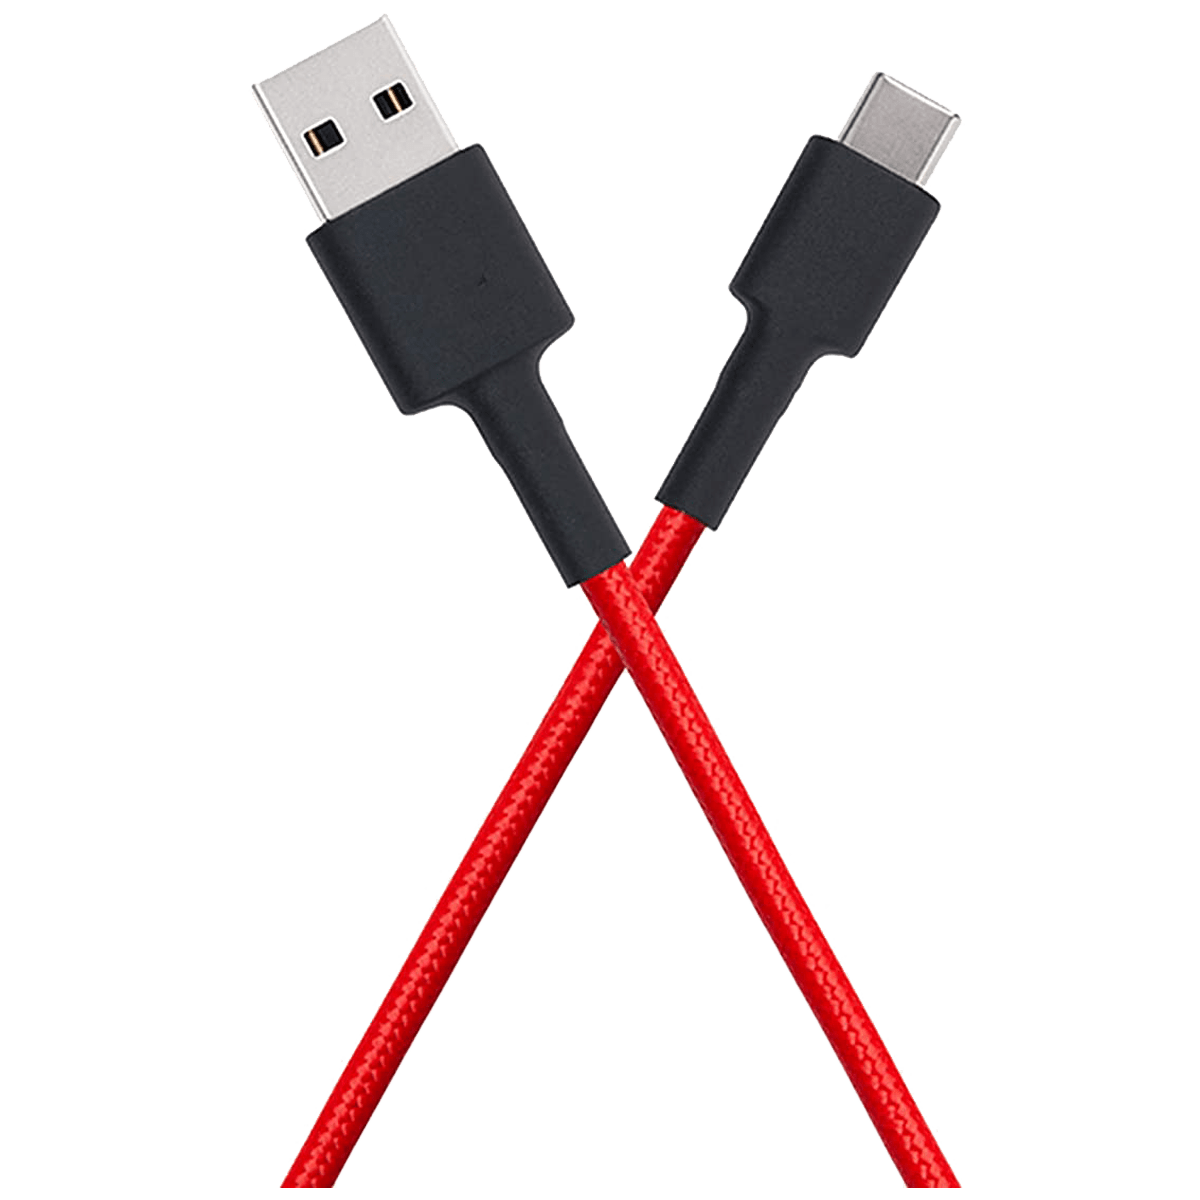 Xiaomi Mi Braided DuPont Kevlar Fiber 1 Meter USB 2.0 (Type-A) to USB 3.0 (Type-C) Power/Charging USB Cable (Fast Charging Compatible, SJV4161IN, Red)